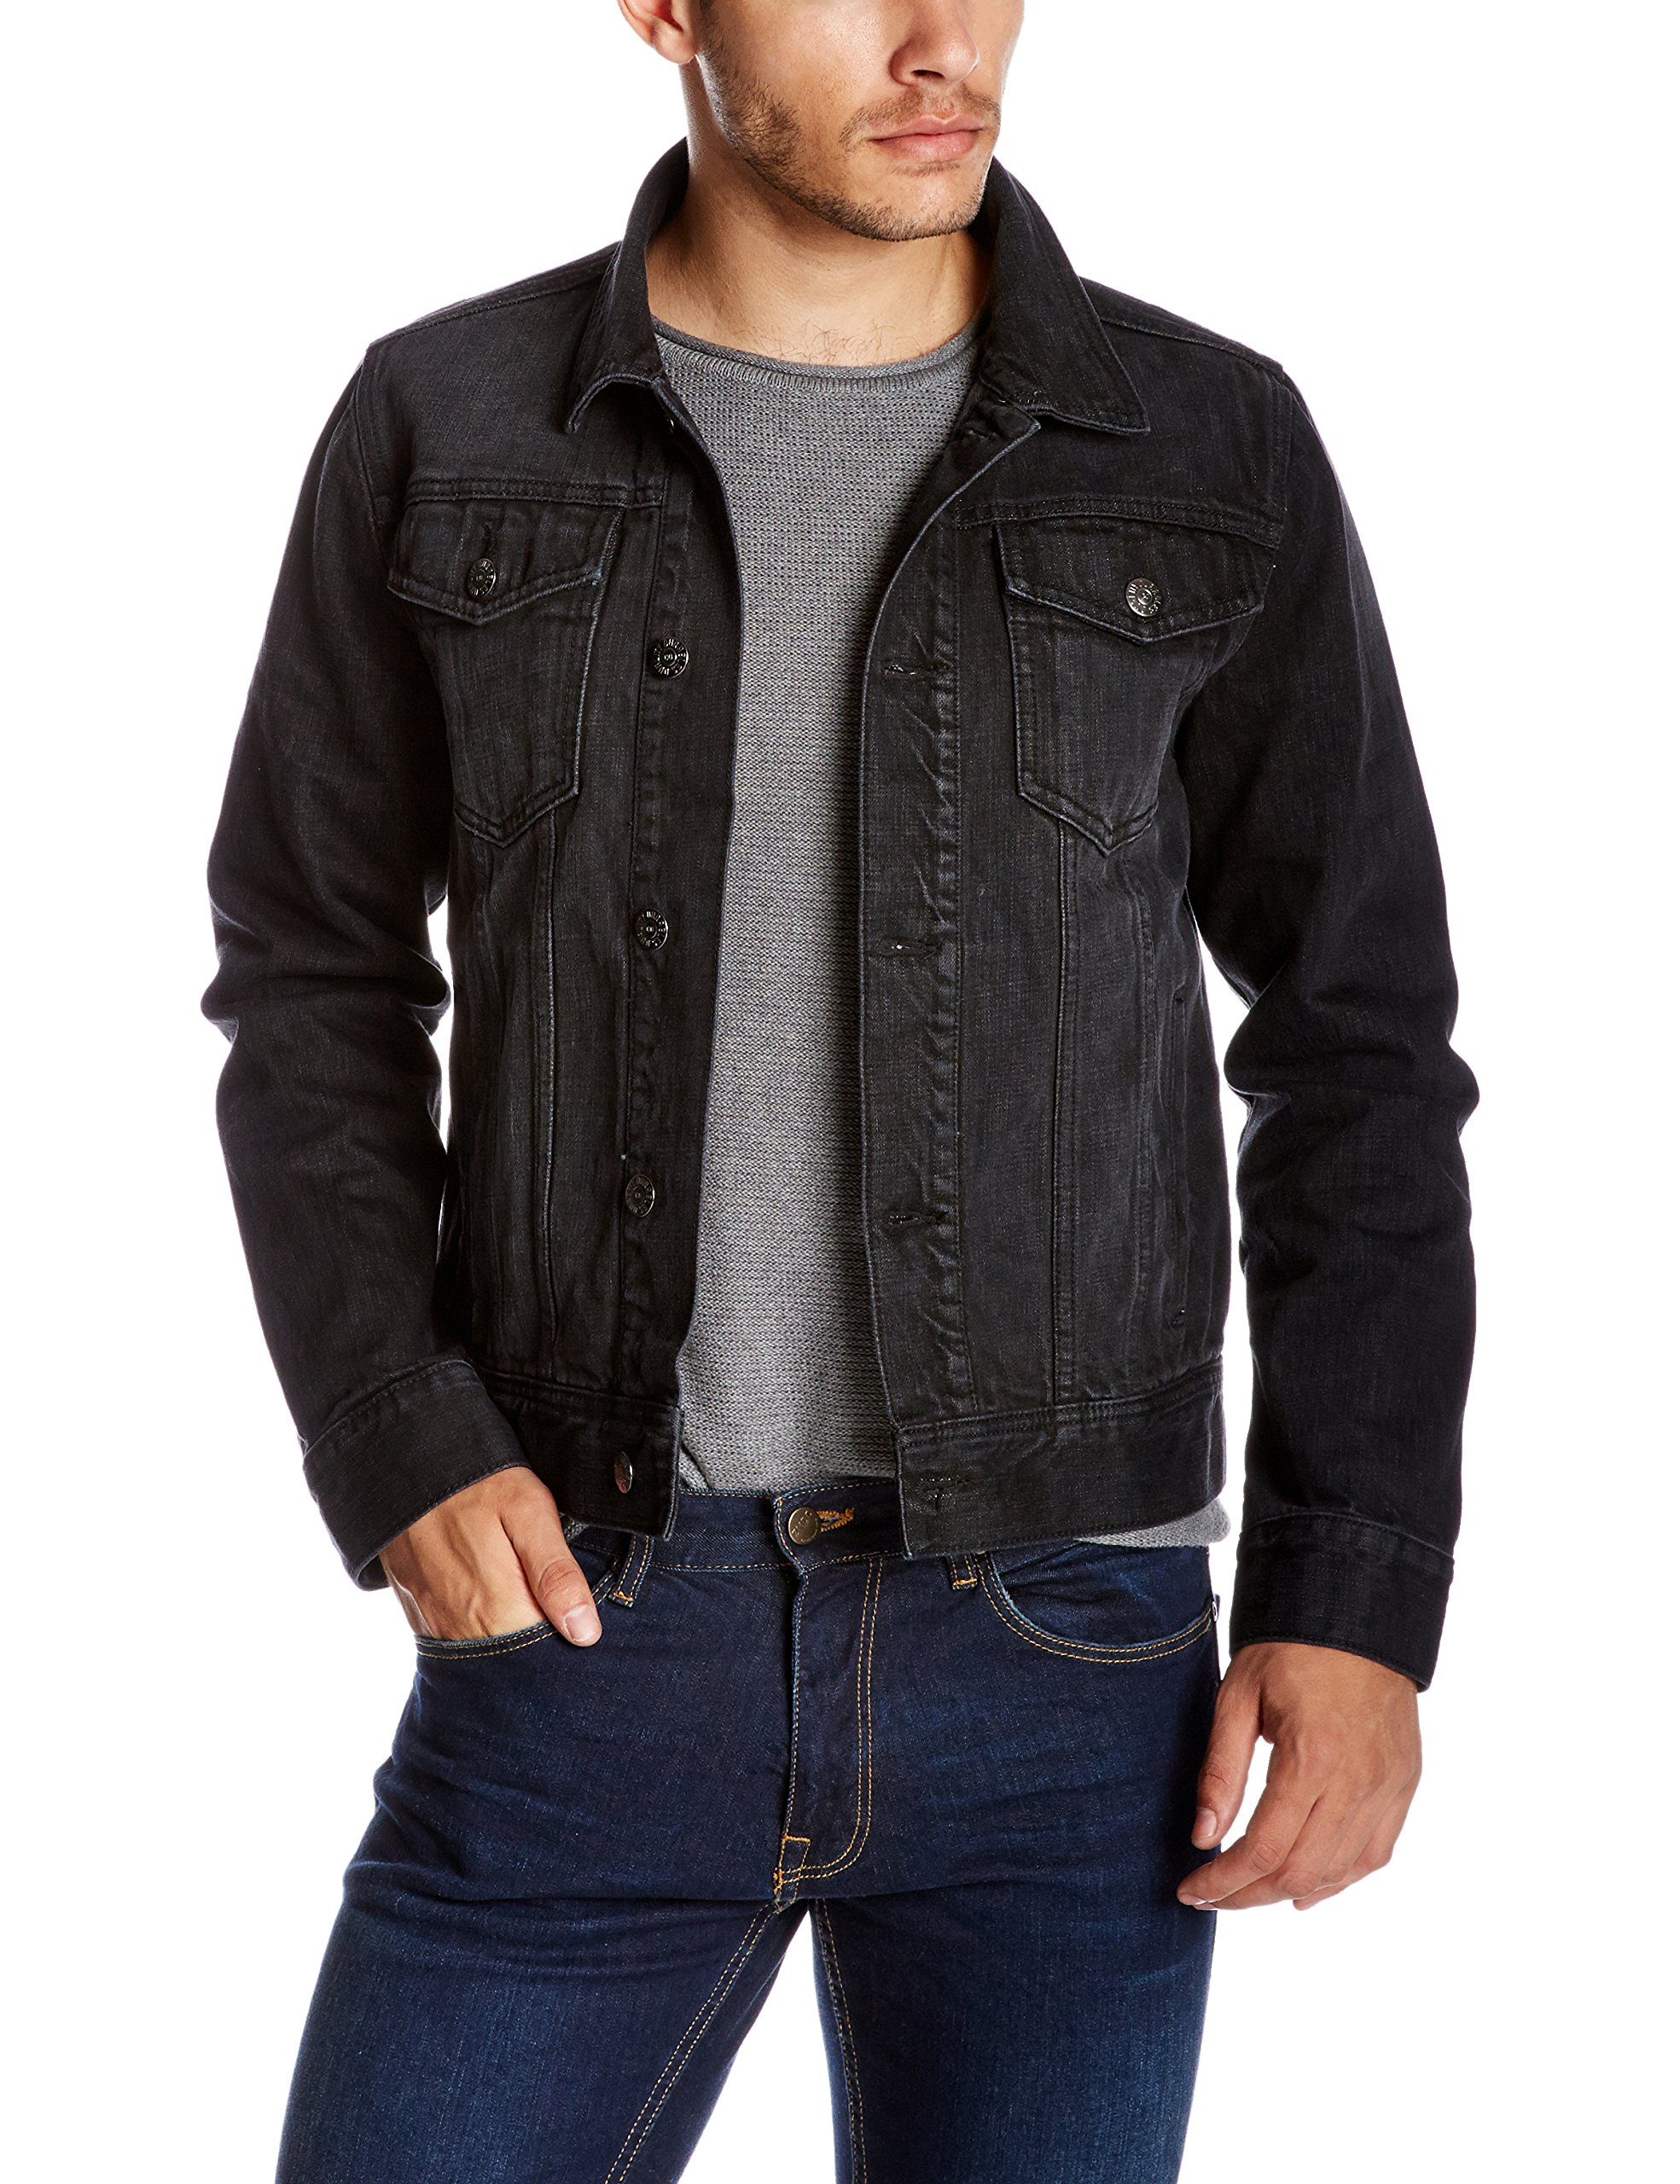 Quality Durables Co. Men's Regular Fit Jean Jacket 3XL Black by Quality Durables Co.